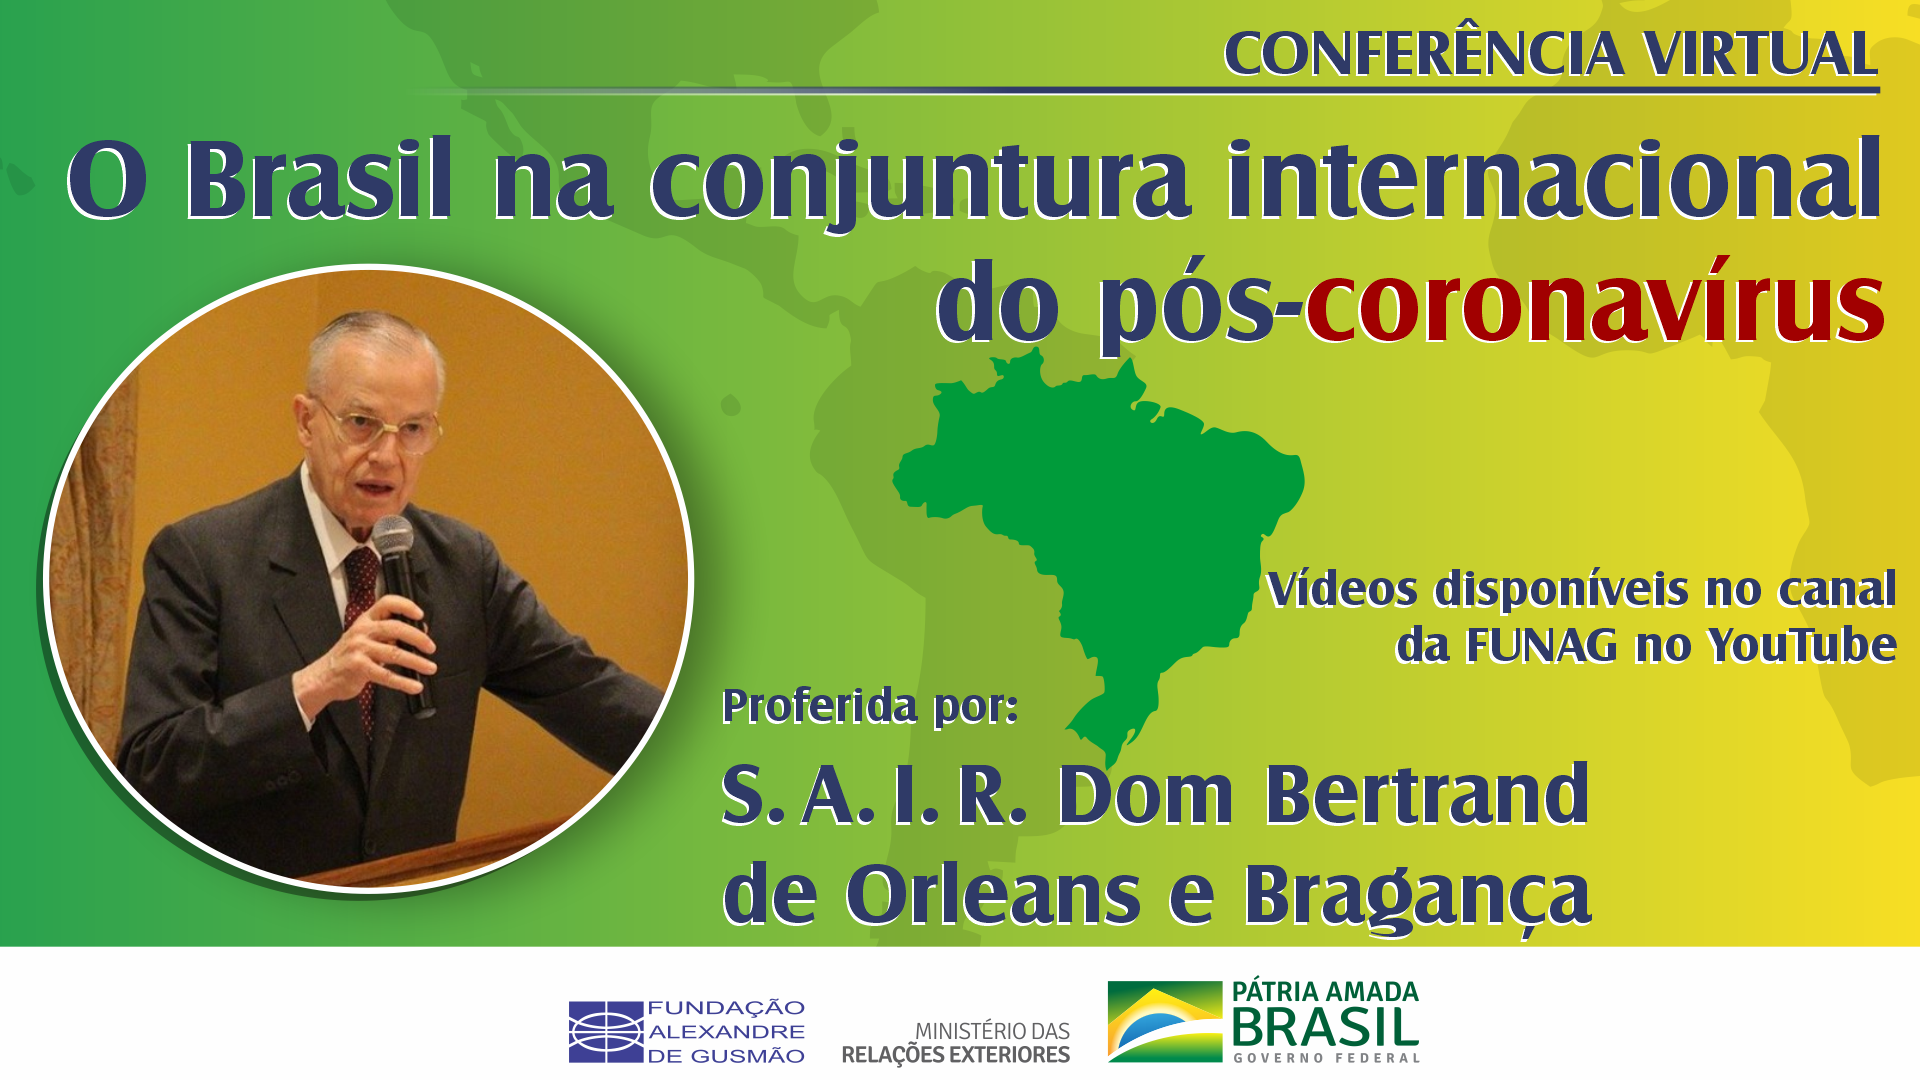 Watch the videos of the conference by Dom Bertrand of Orléans-Braganza